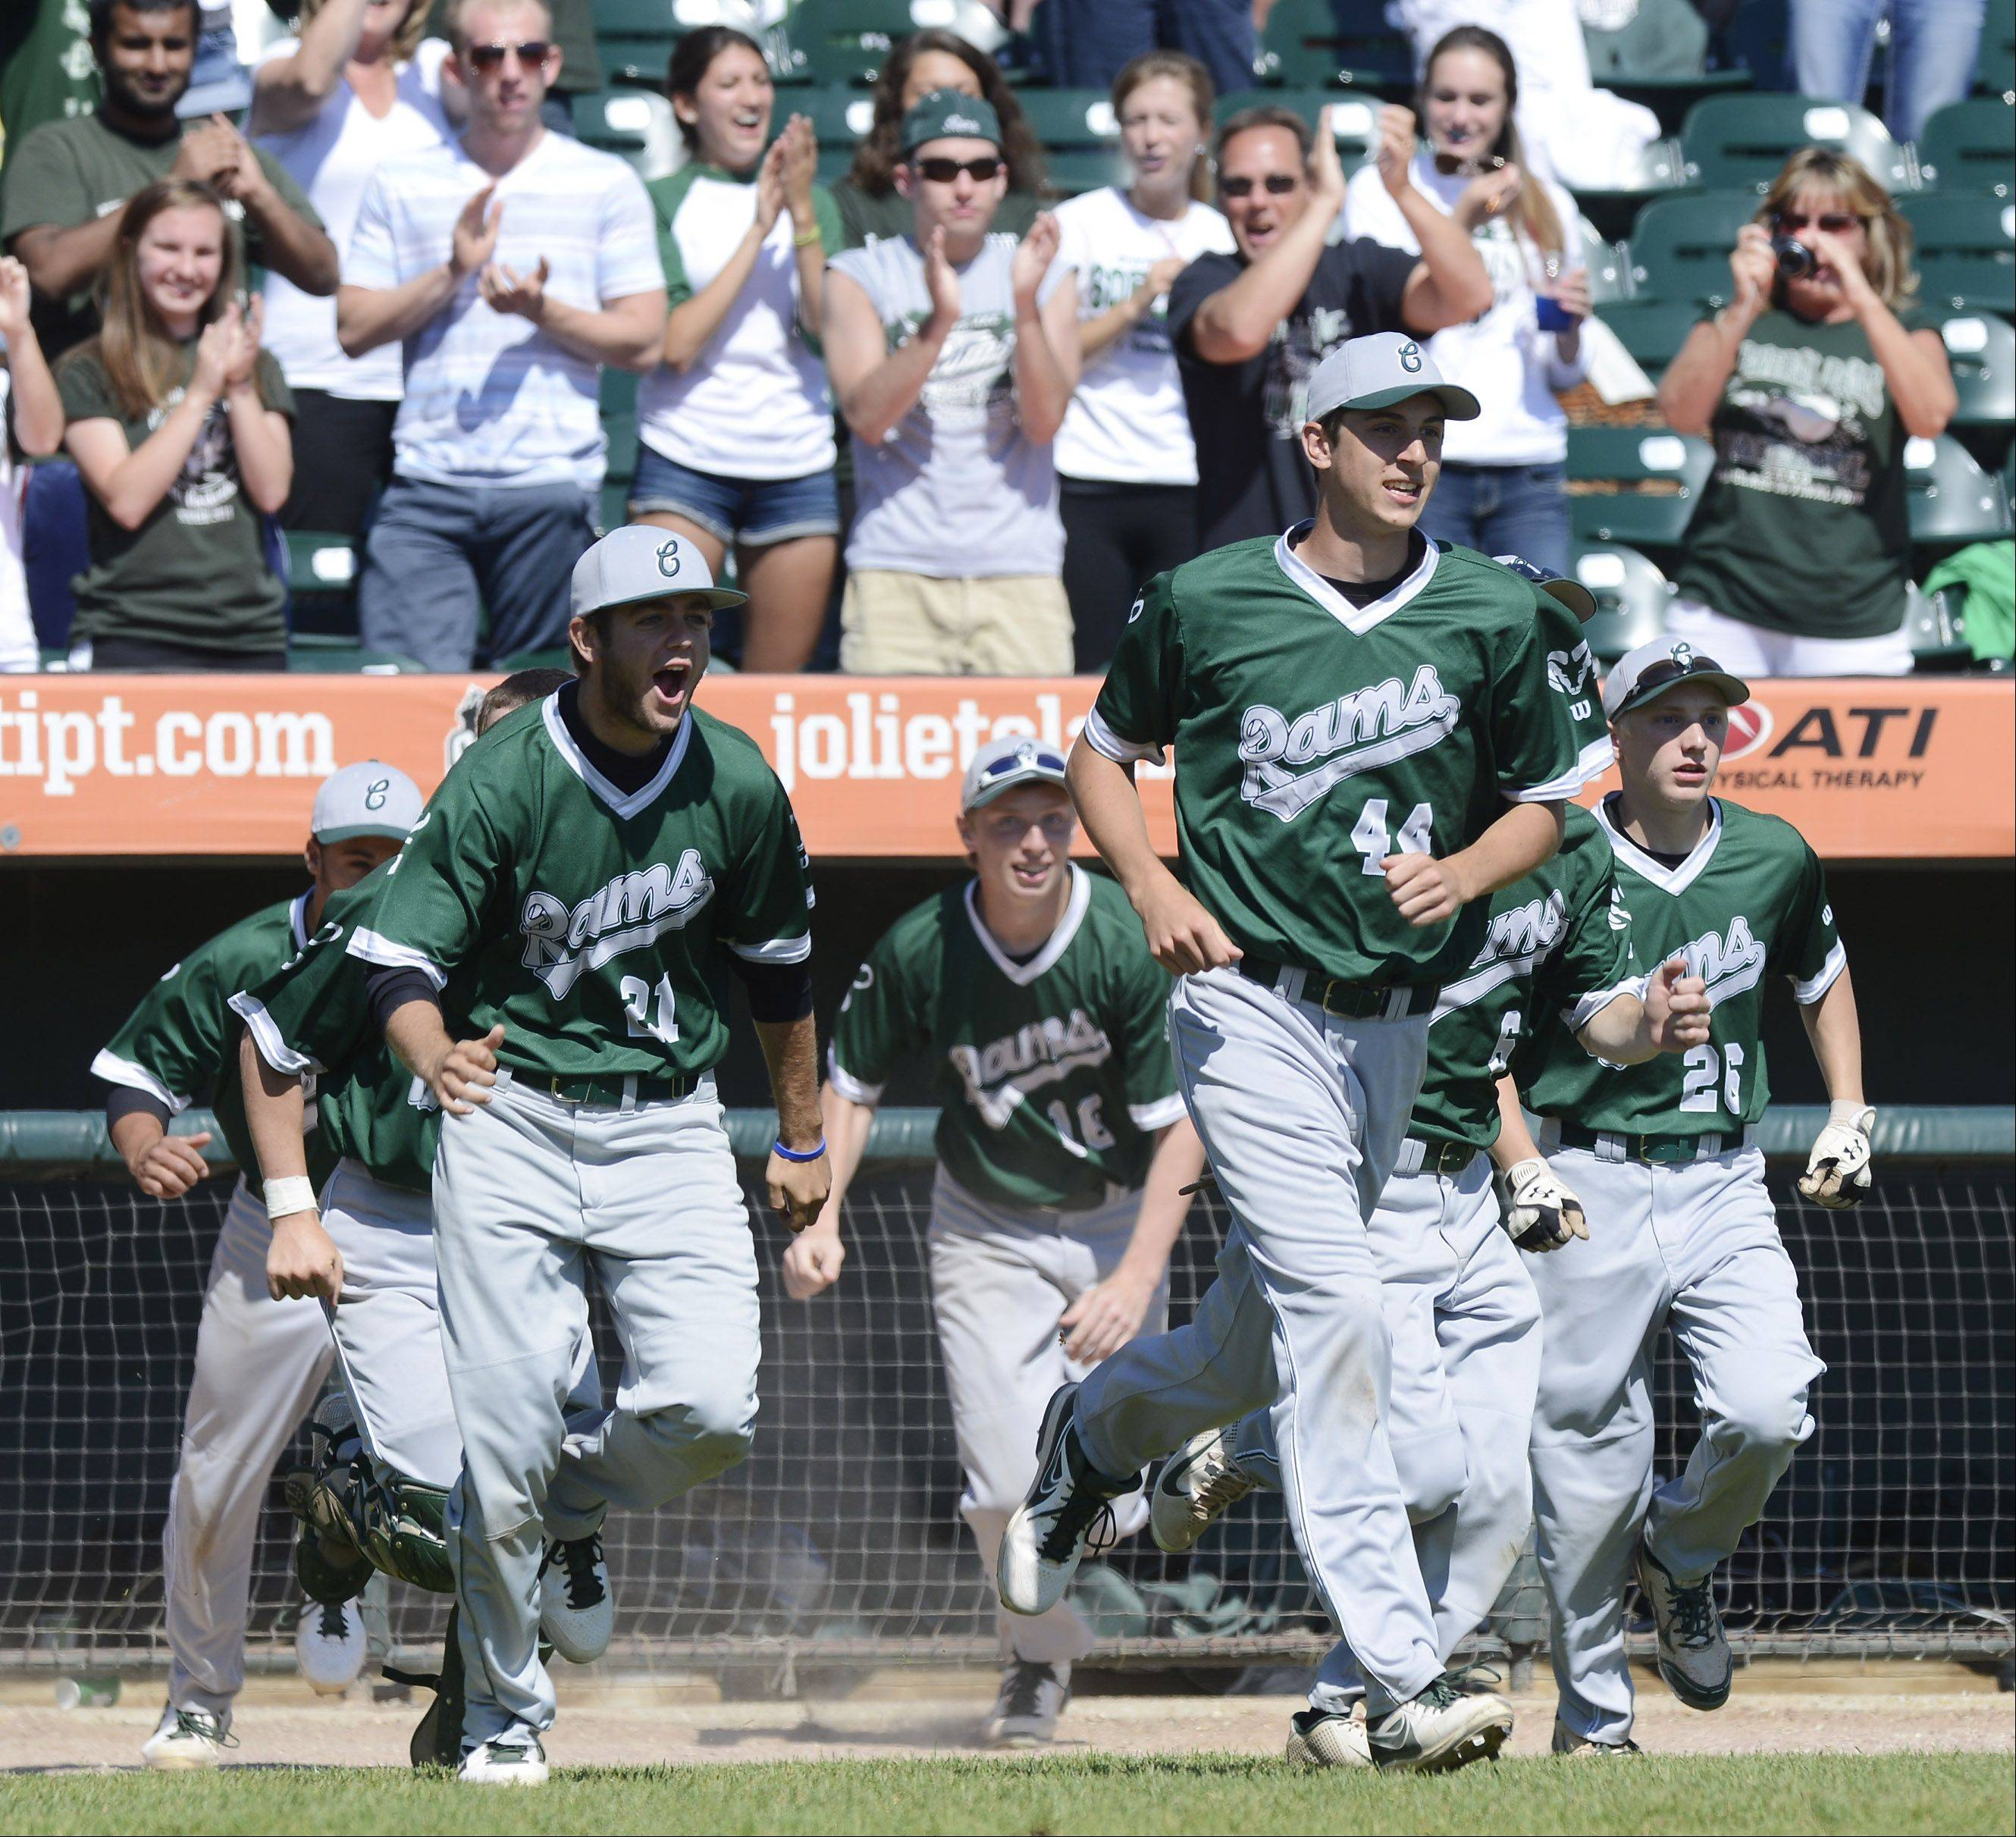 Grayslake Central players charge onto the field after their team beat Mt. Vernon 1-0 during the Class 3A state baseball third-place game at Silver Cross Field in Joliet Saturday.